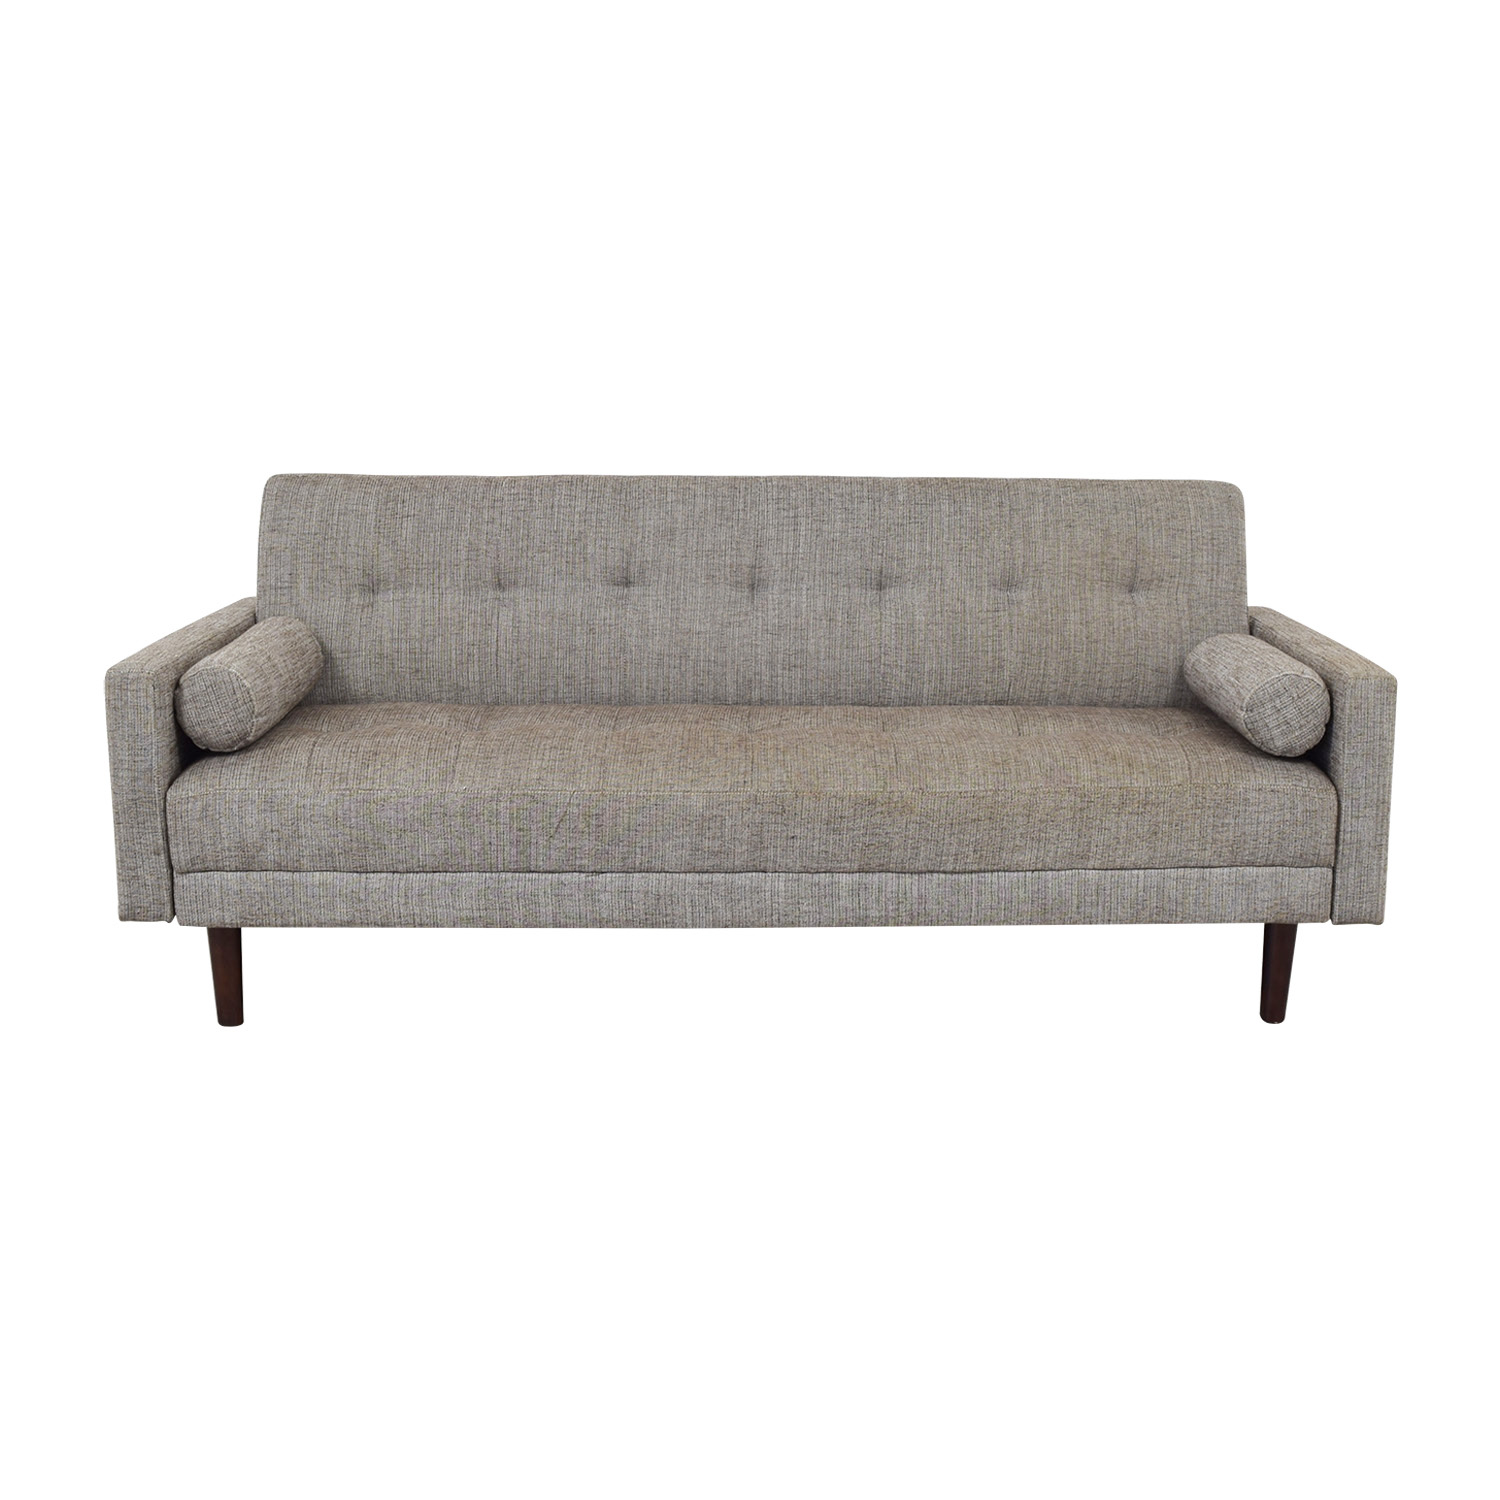 Urban Outfitters Urban Outfitters Grey Tufted Three-Cushion Convertible Sofa Sofas